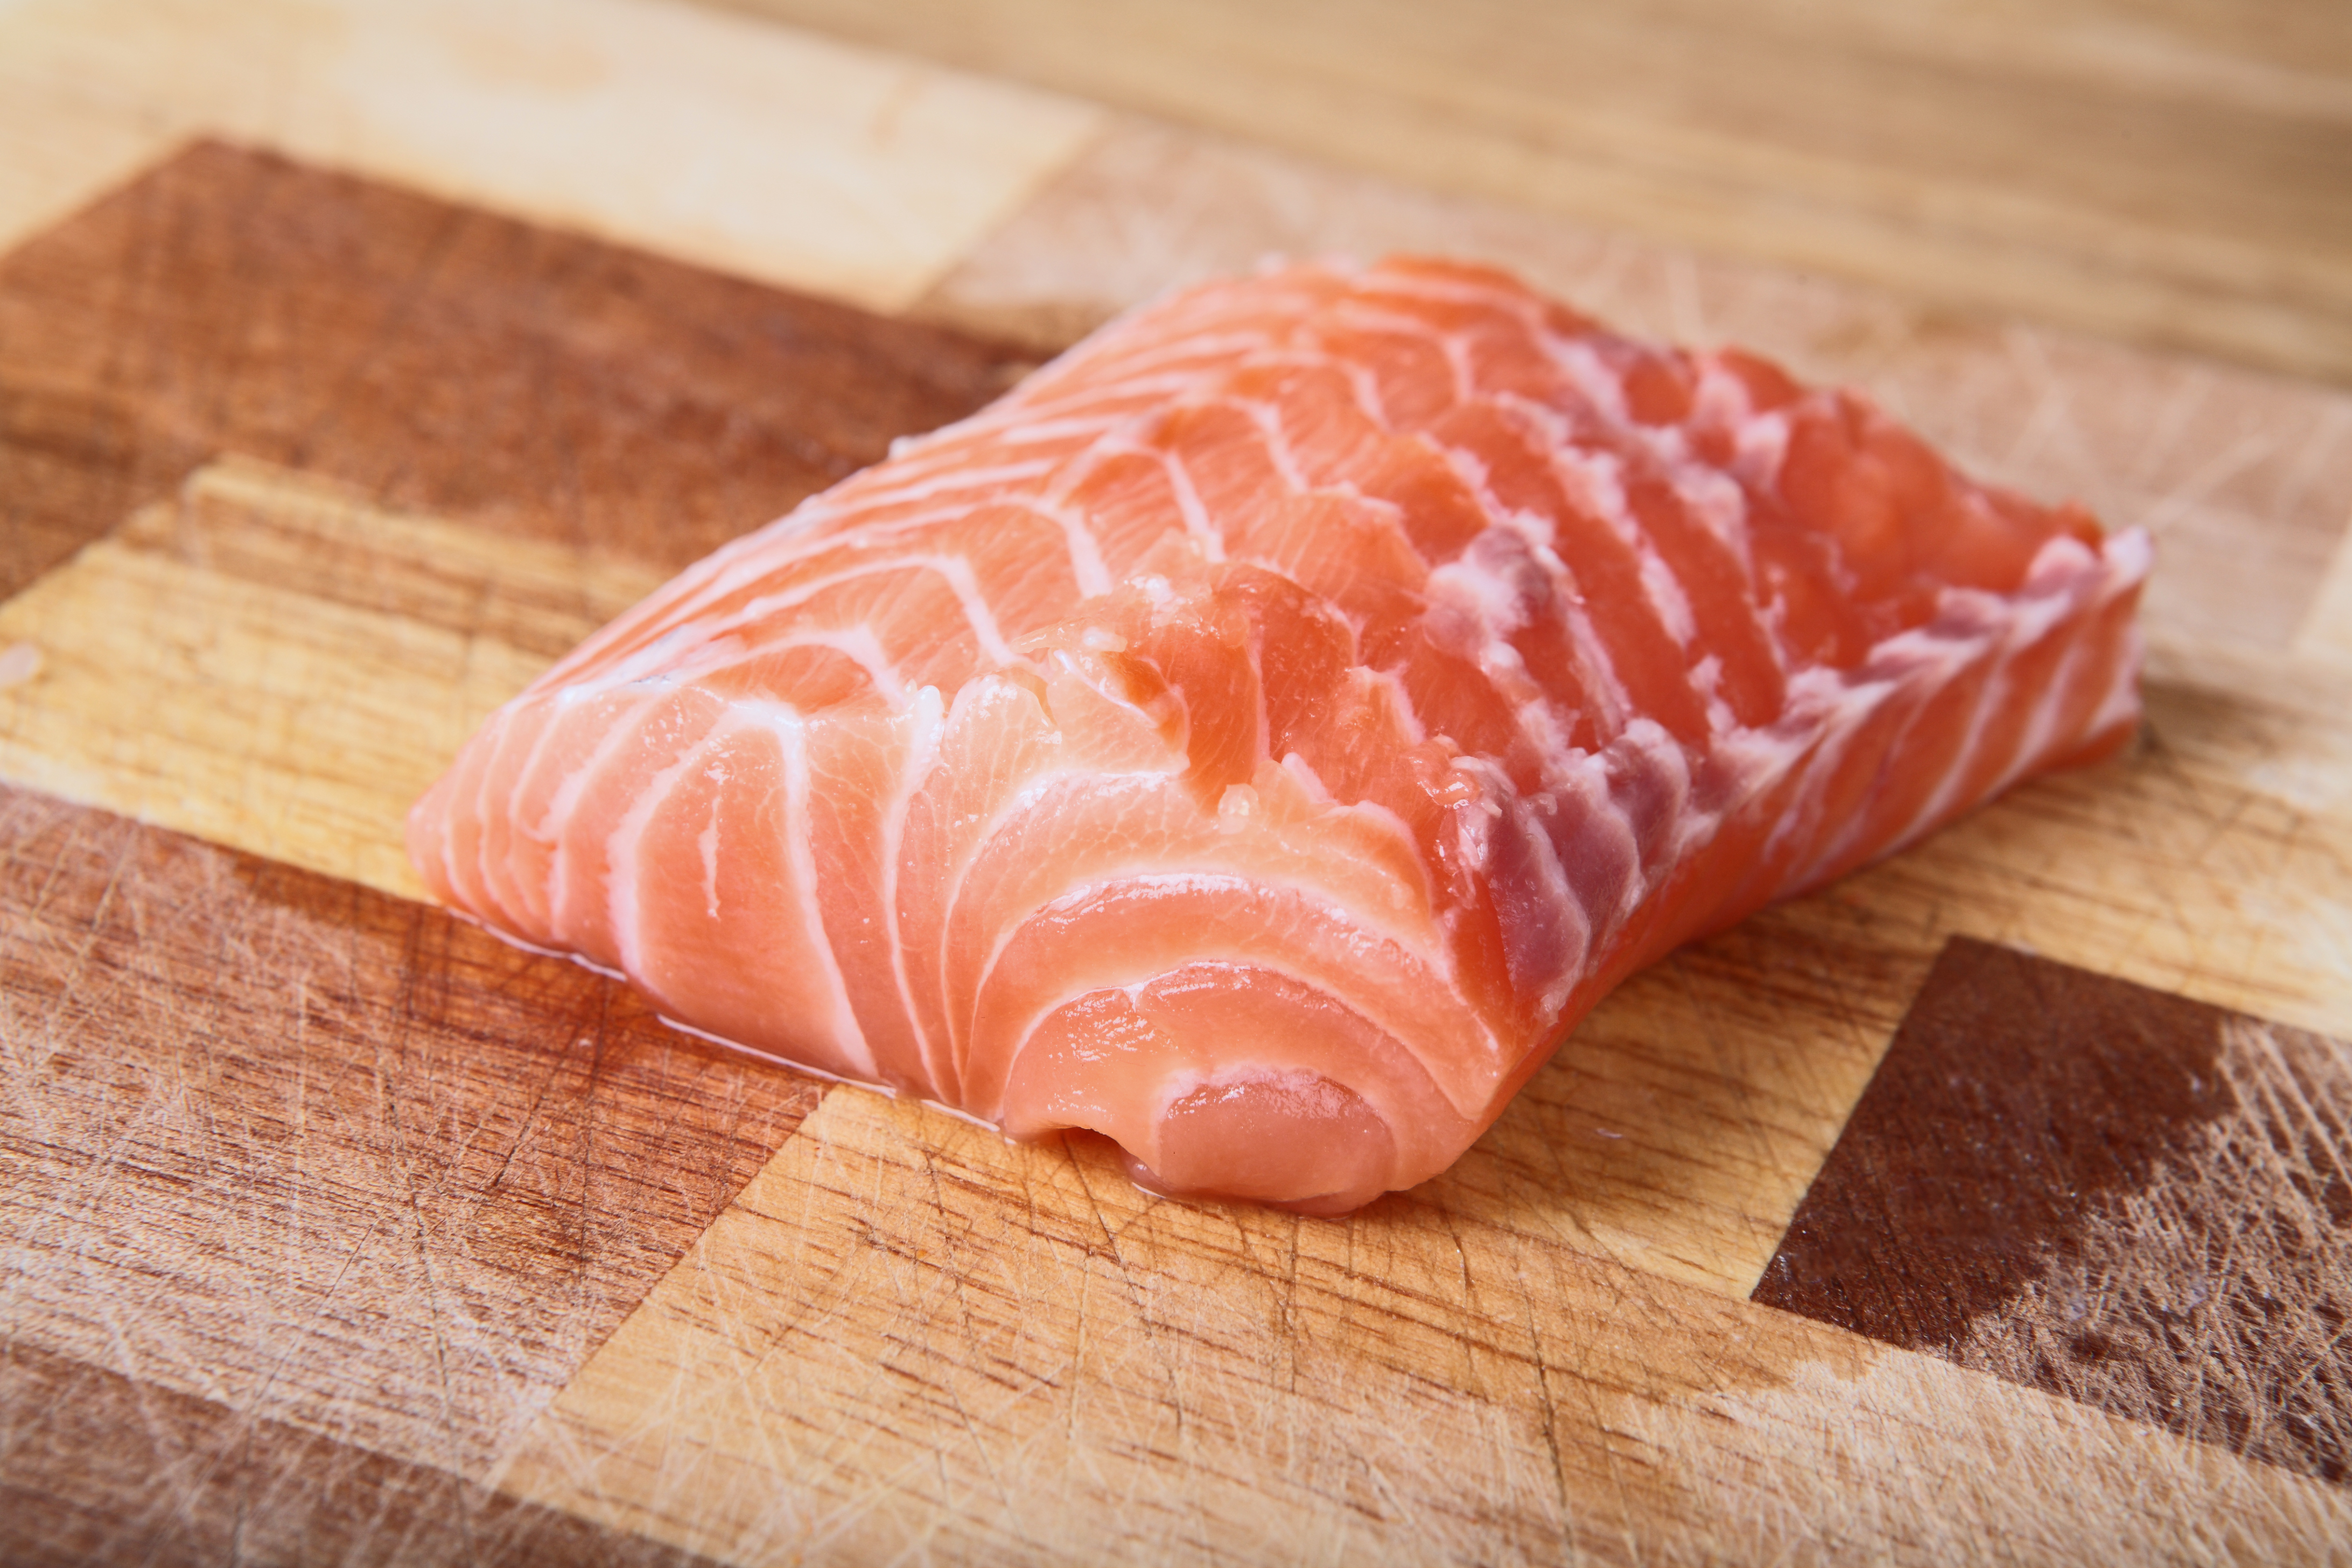 a growing concern on the foods we eat Food safety is everybody's concern, and it is difficult to find anyone who has not   processed, frozen or ready-to-eat food is gaining popularity in recent  in urban  settings, there is a growing tendency to buy meat, milk and.